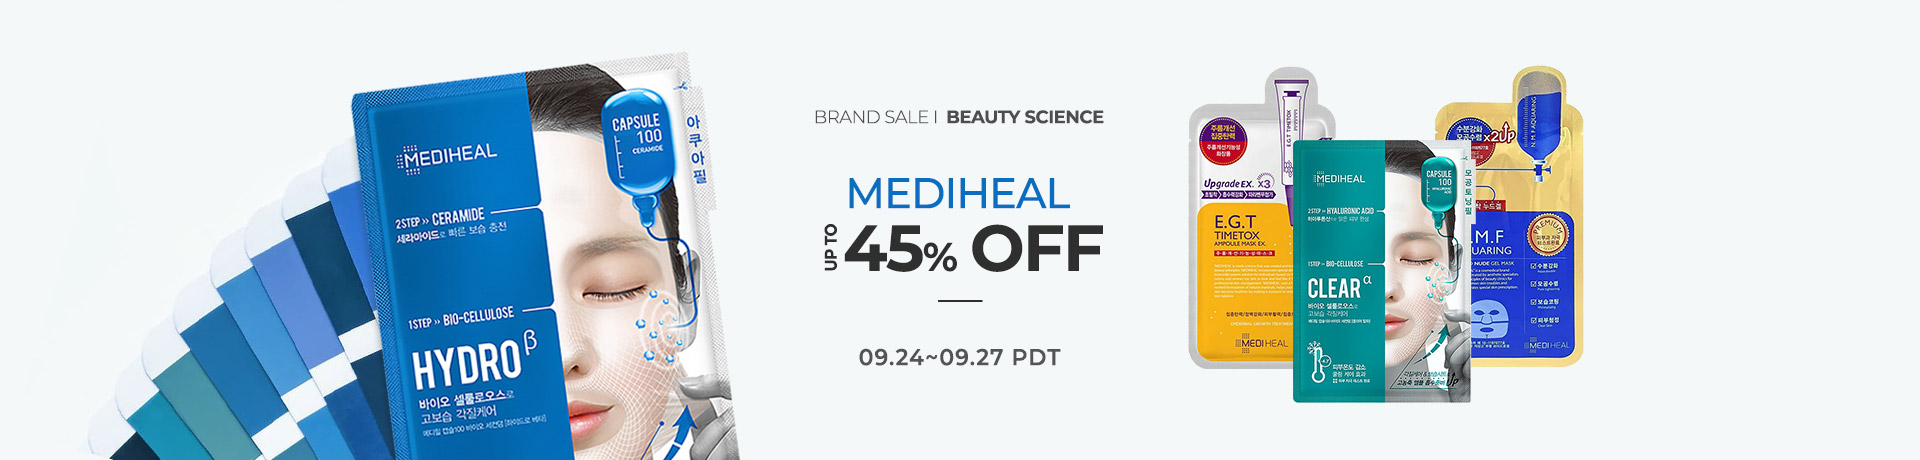 MEDI HEAL Up to 45% OFF